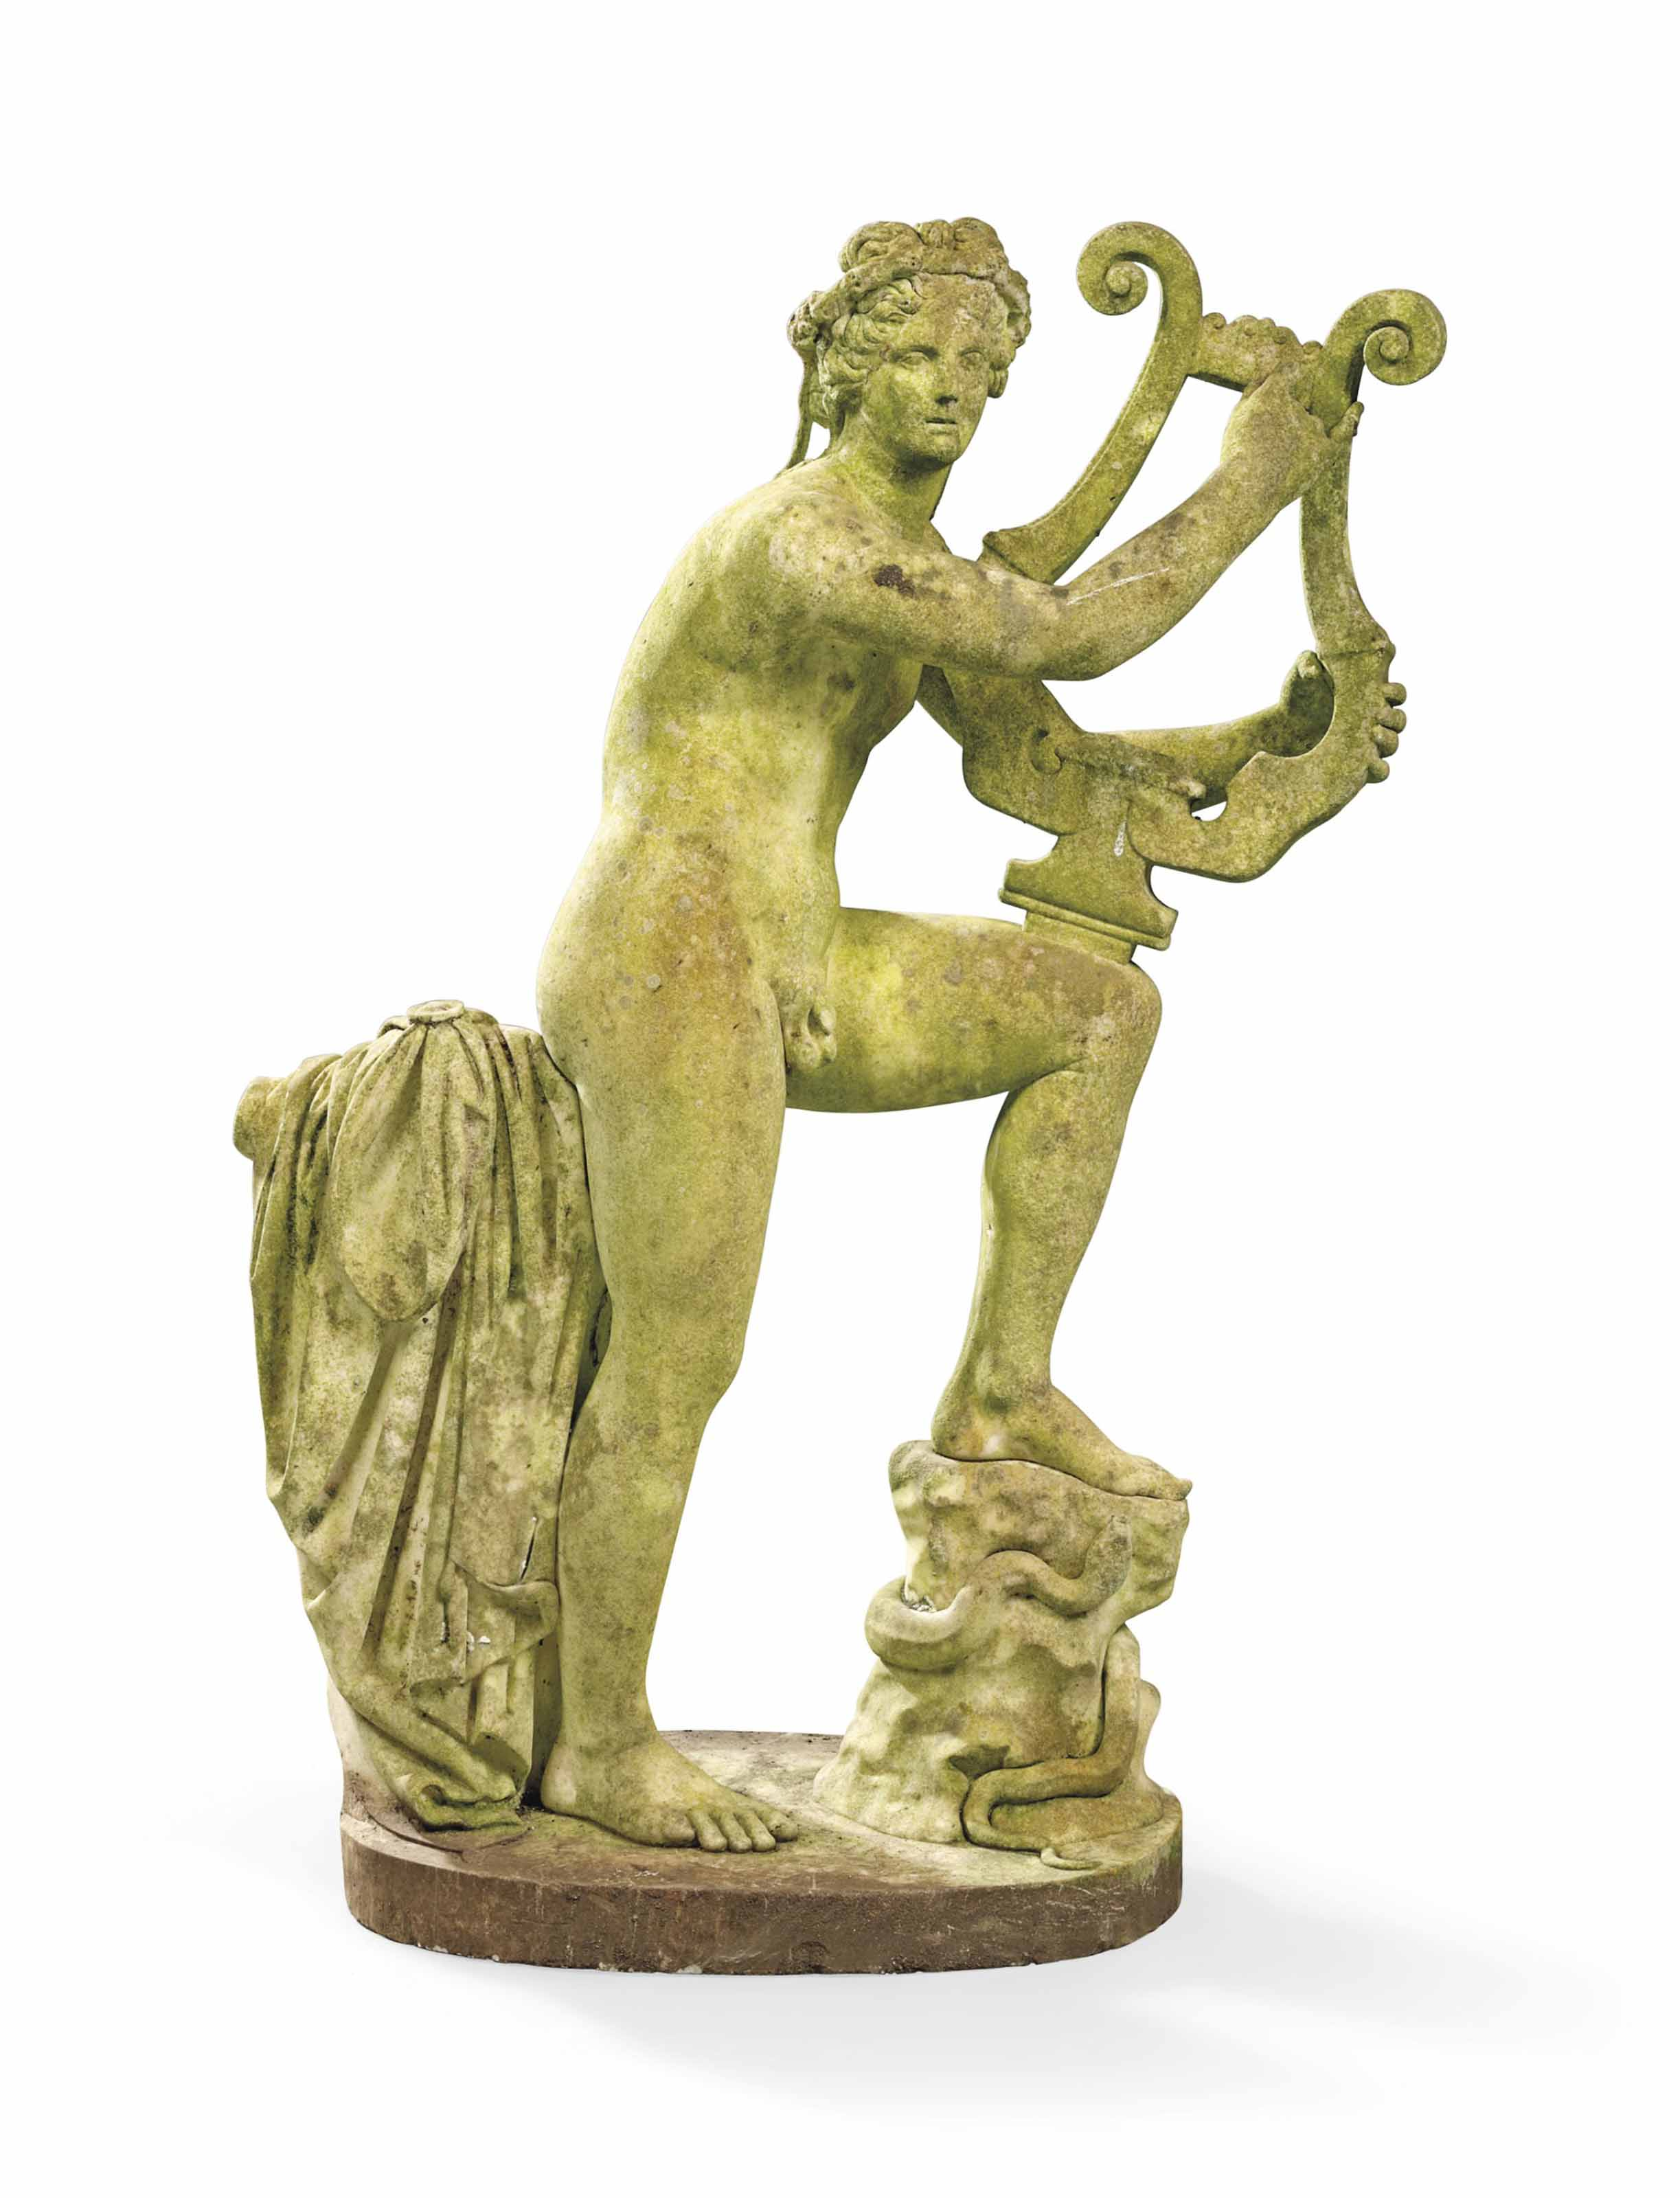 A CARVED MARBLE FIGURE OF APOLLO PLAYING HIS LYRE